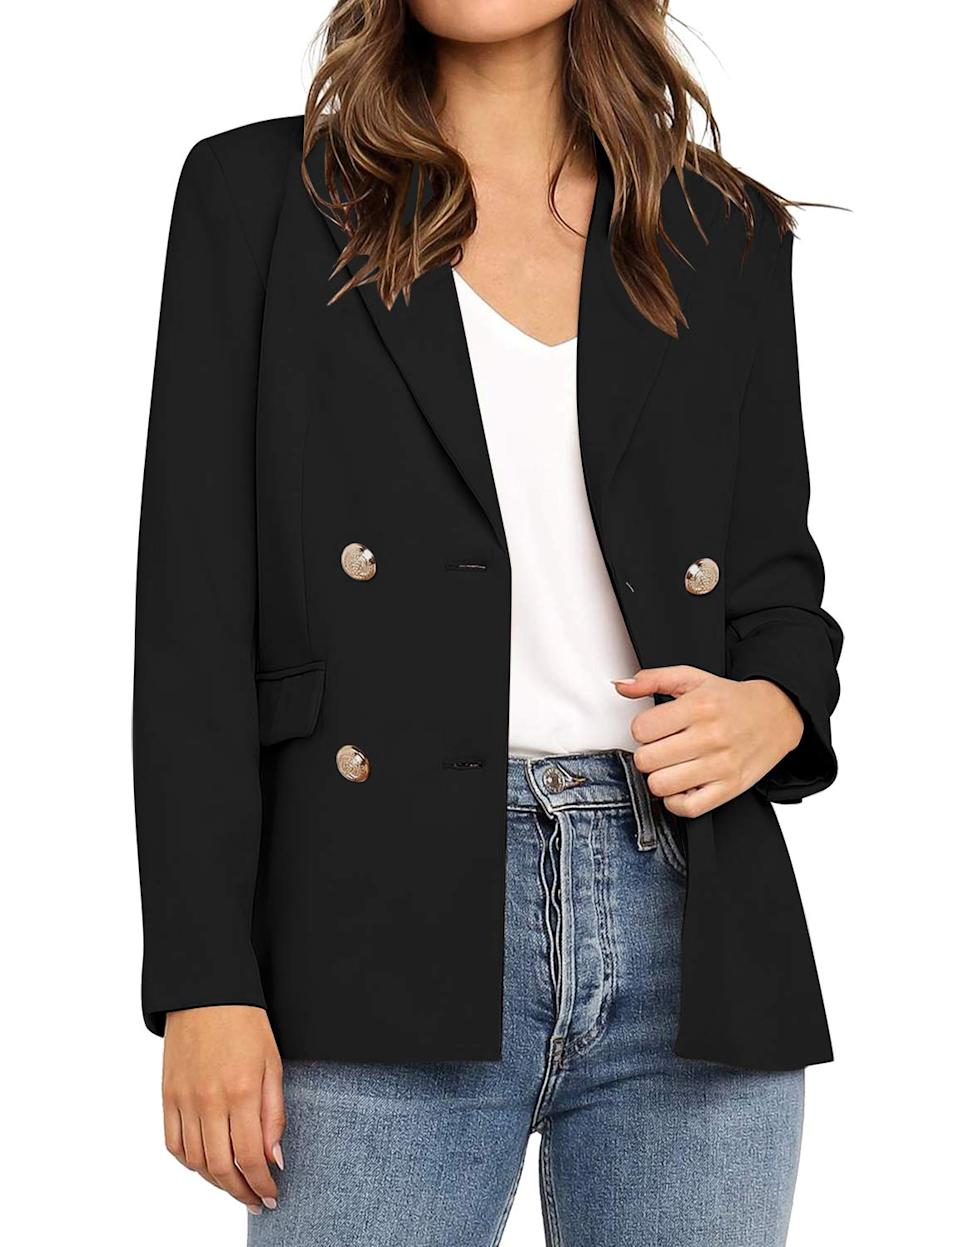 """<br><br><strong>Vetinee</strong> Lapel Pocket Blazer, $, available at <a href=""""https://amzn.to/3iCgnjB"""" rel=""""nofollow noopener"""" target=""""_blank"""" data-ylk=""""slk:Amazon"""" class=""""link rapid-noclick-resp"""">Amazon</a>"""